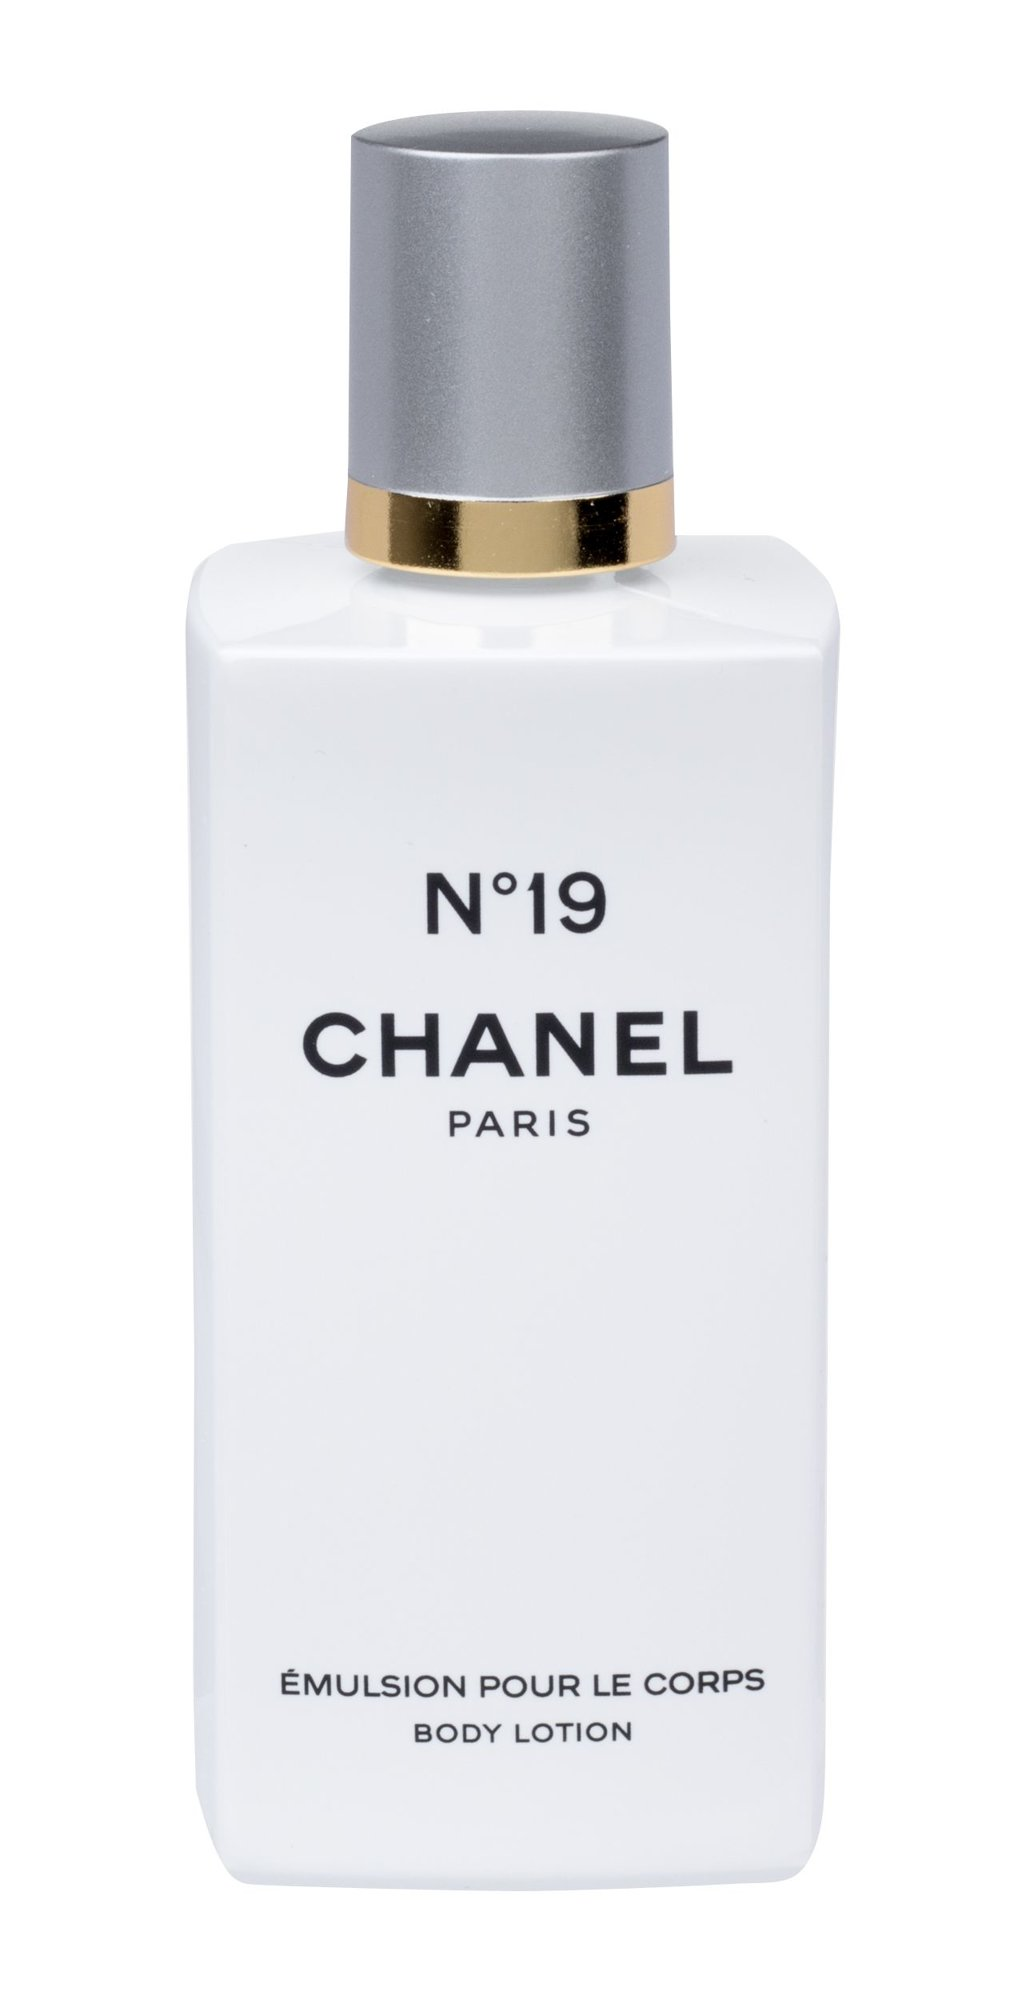 Chanel No. 19 Body lotion 200ml